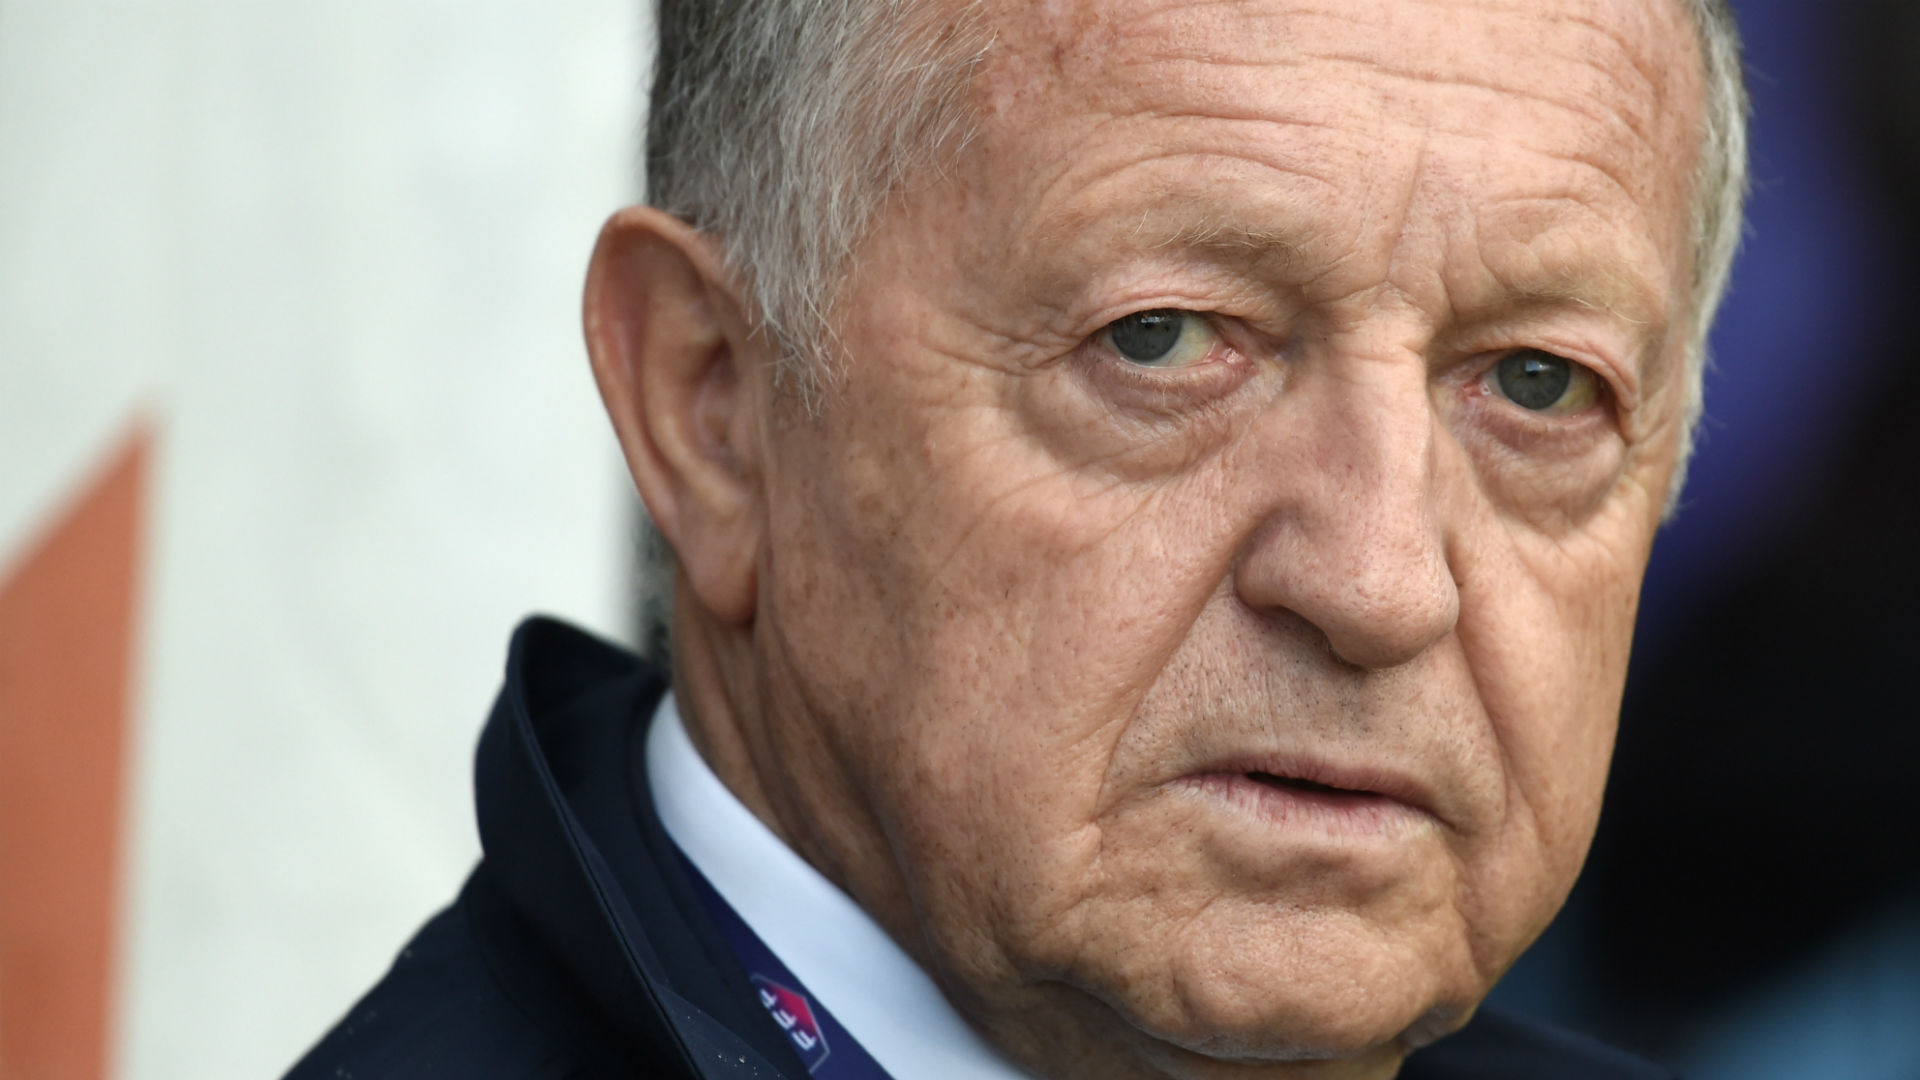 Lyon president Aulas has gone too far with criticism after Ligue 1 ended early by coronavirus, says FFF chief